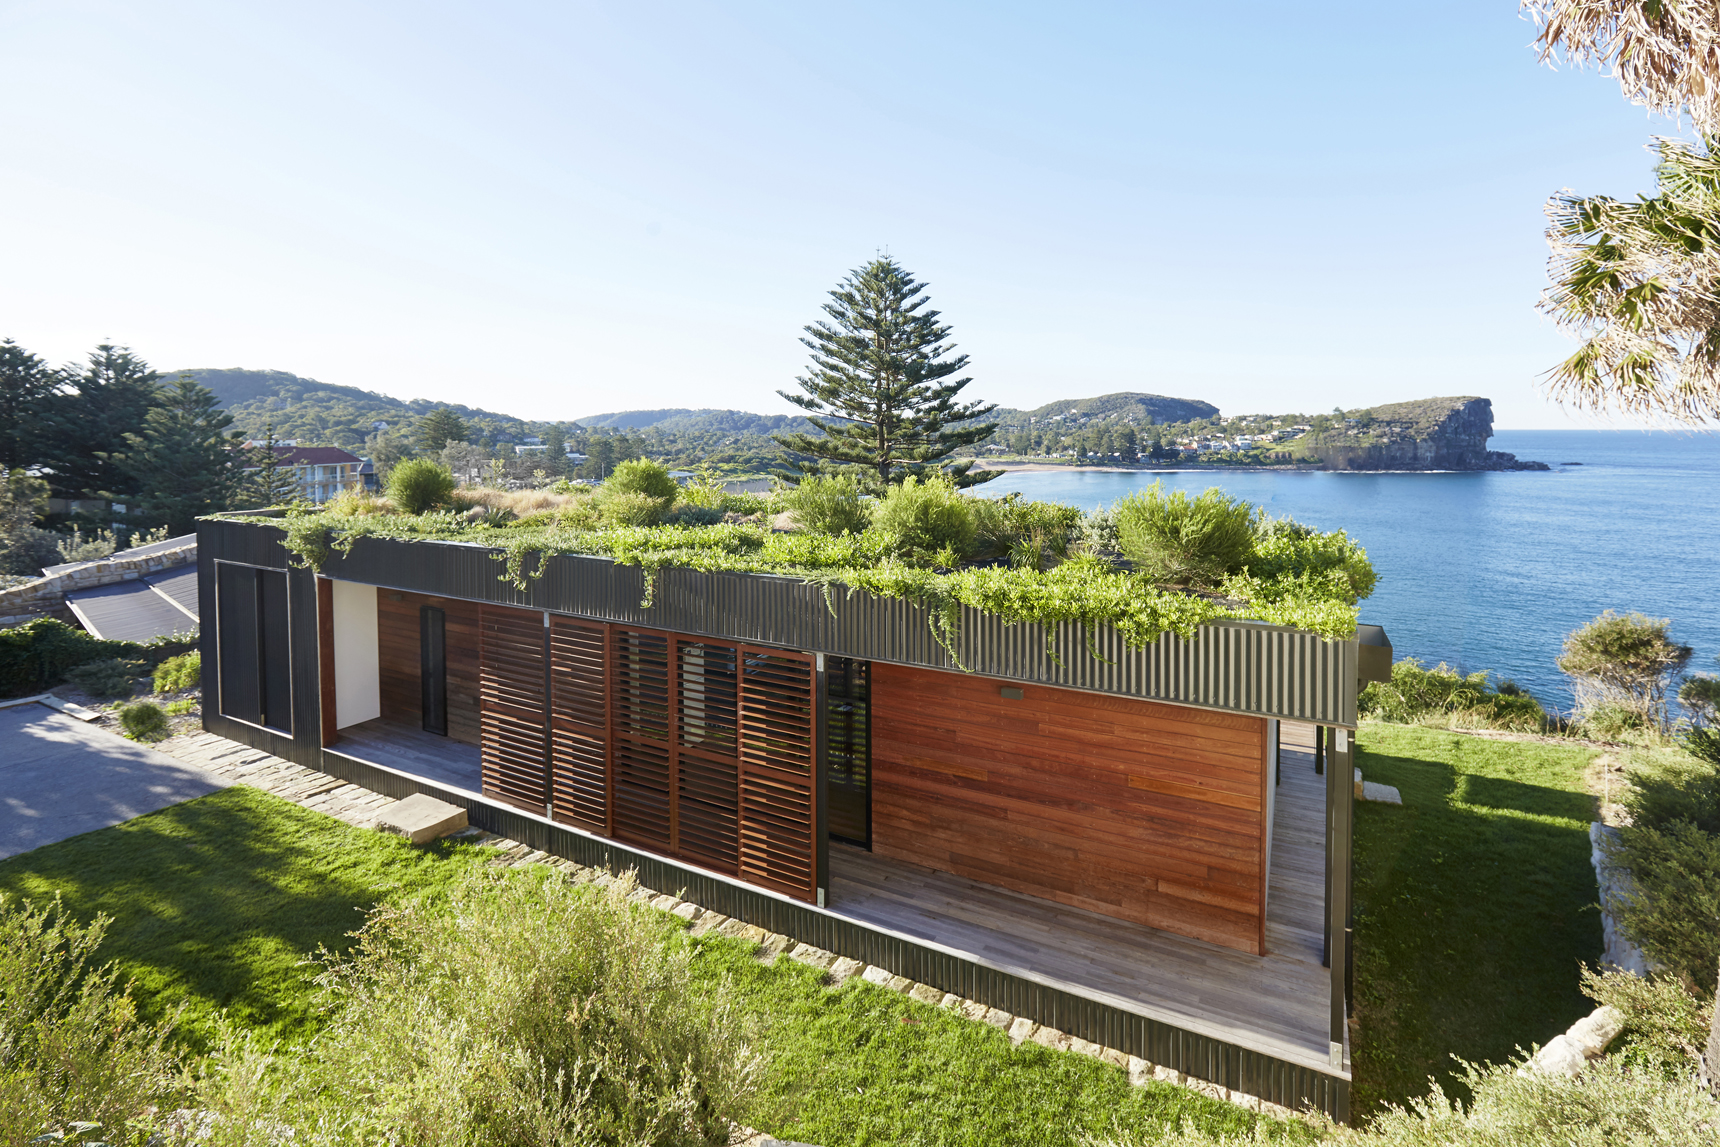 avalon green roof example image